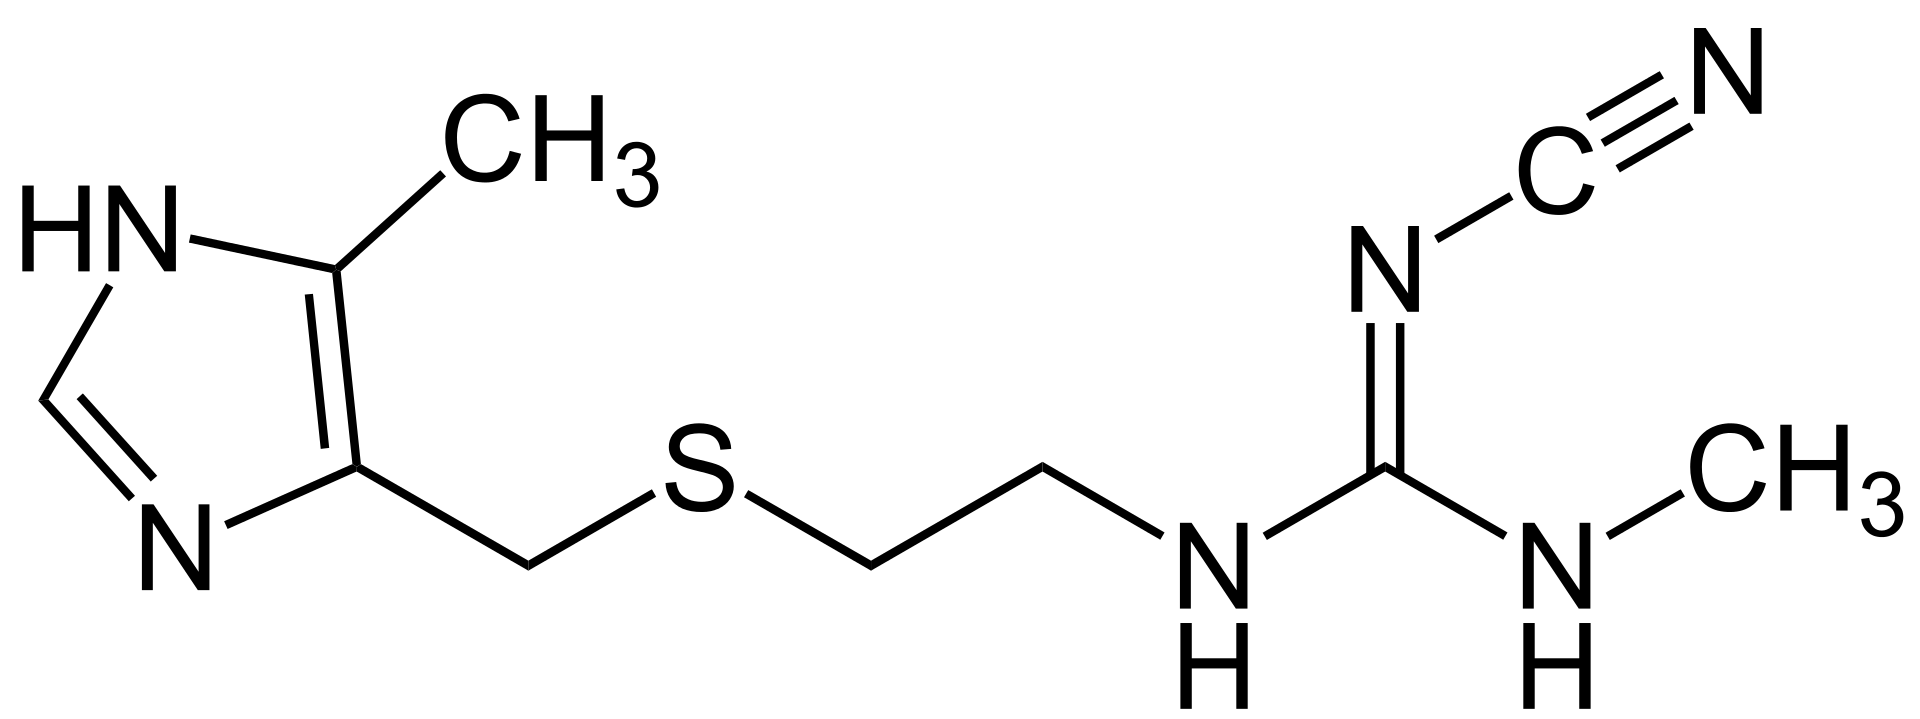 Structure of H2 Blockers